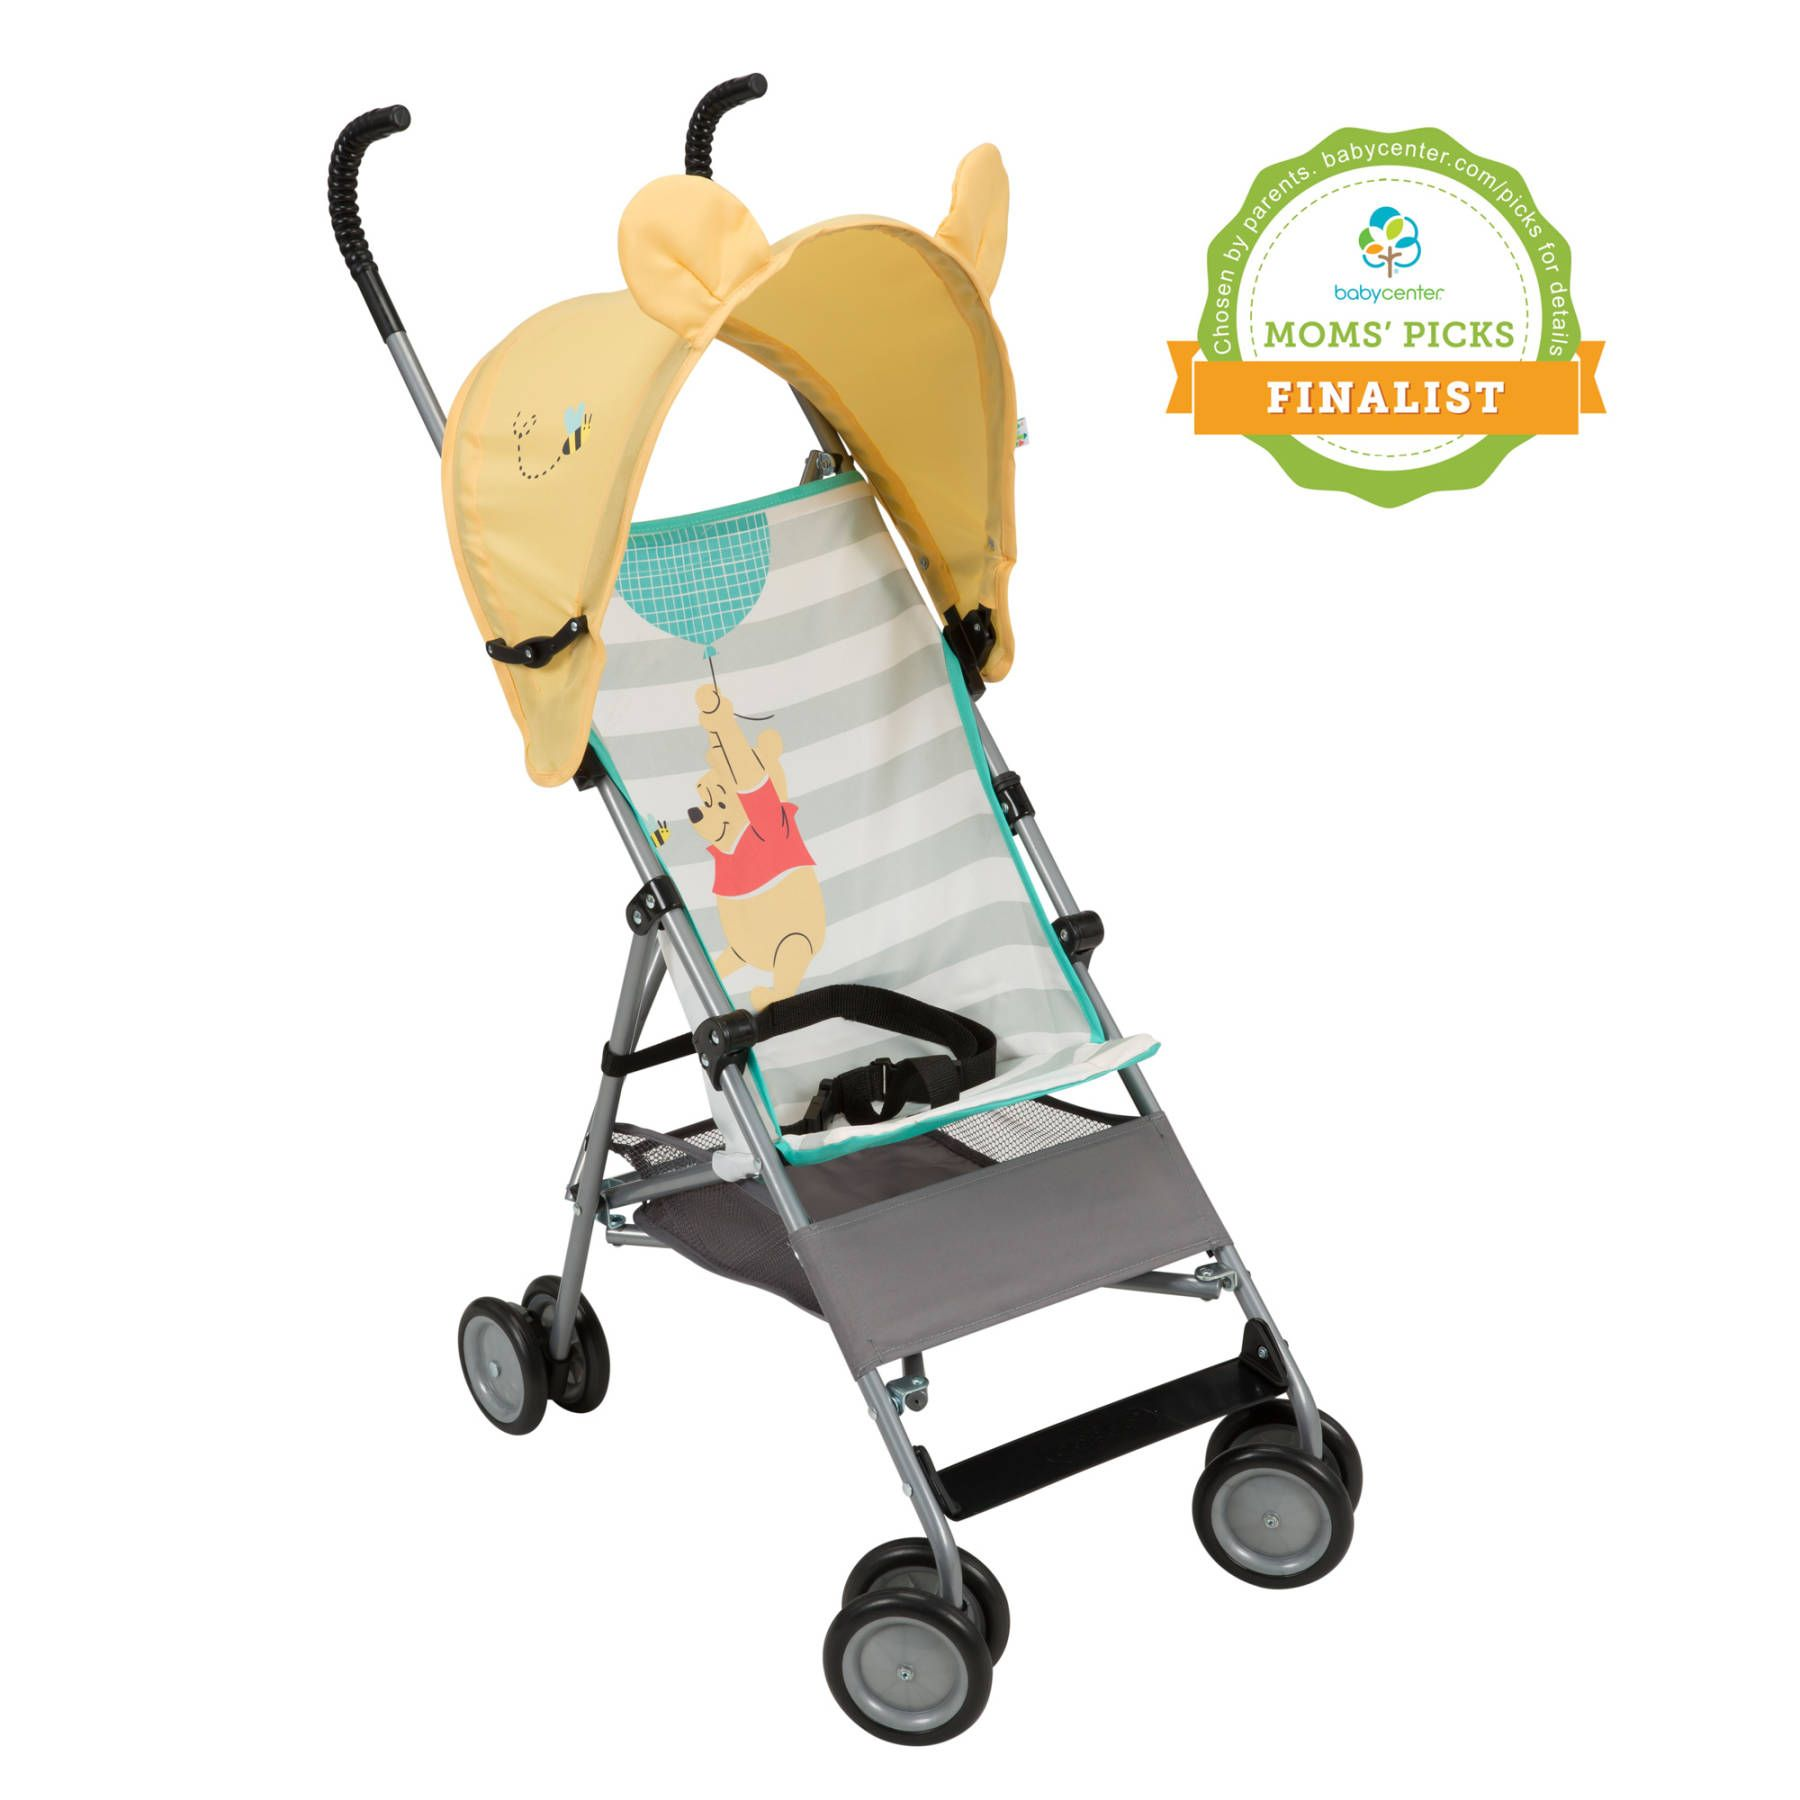 Winnie the Pooh Comfort Height Character Umbrella Stroller